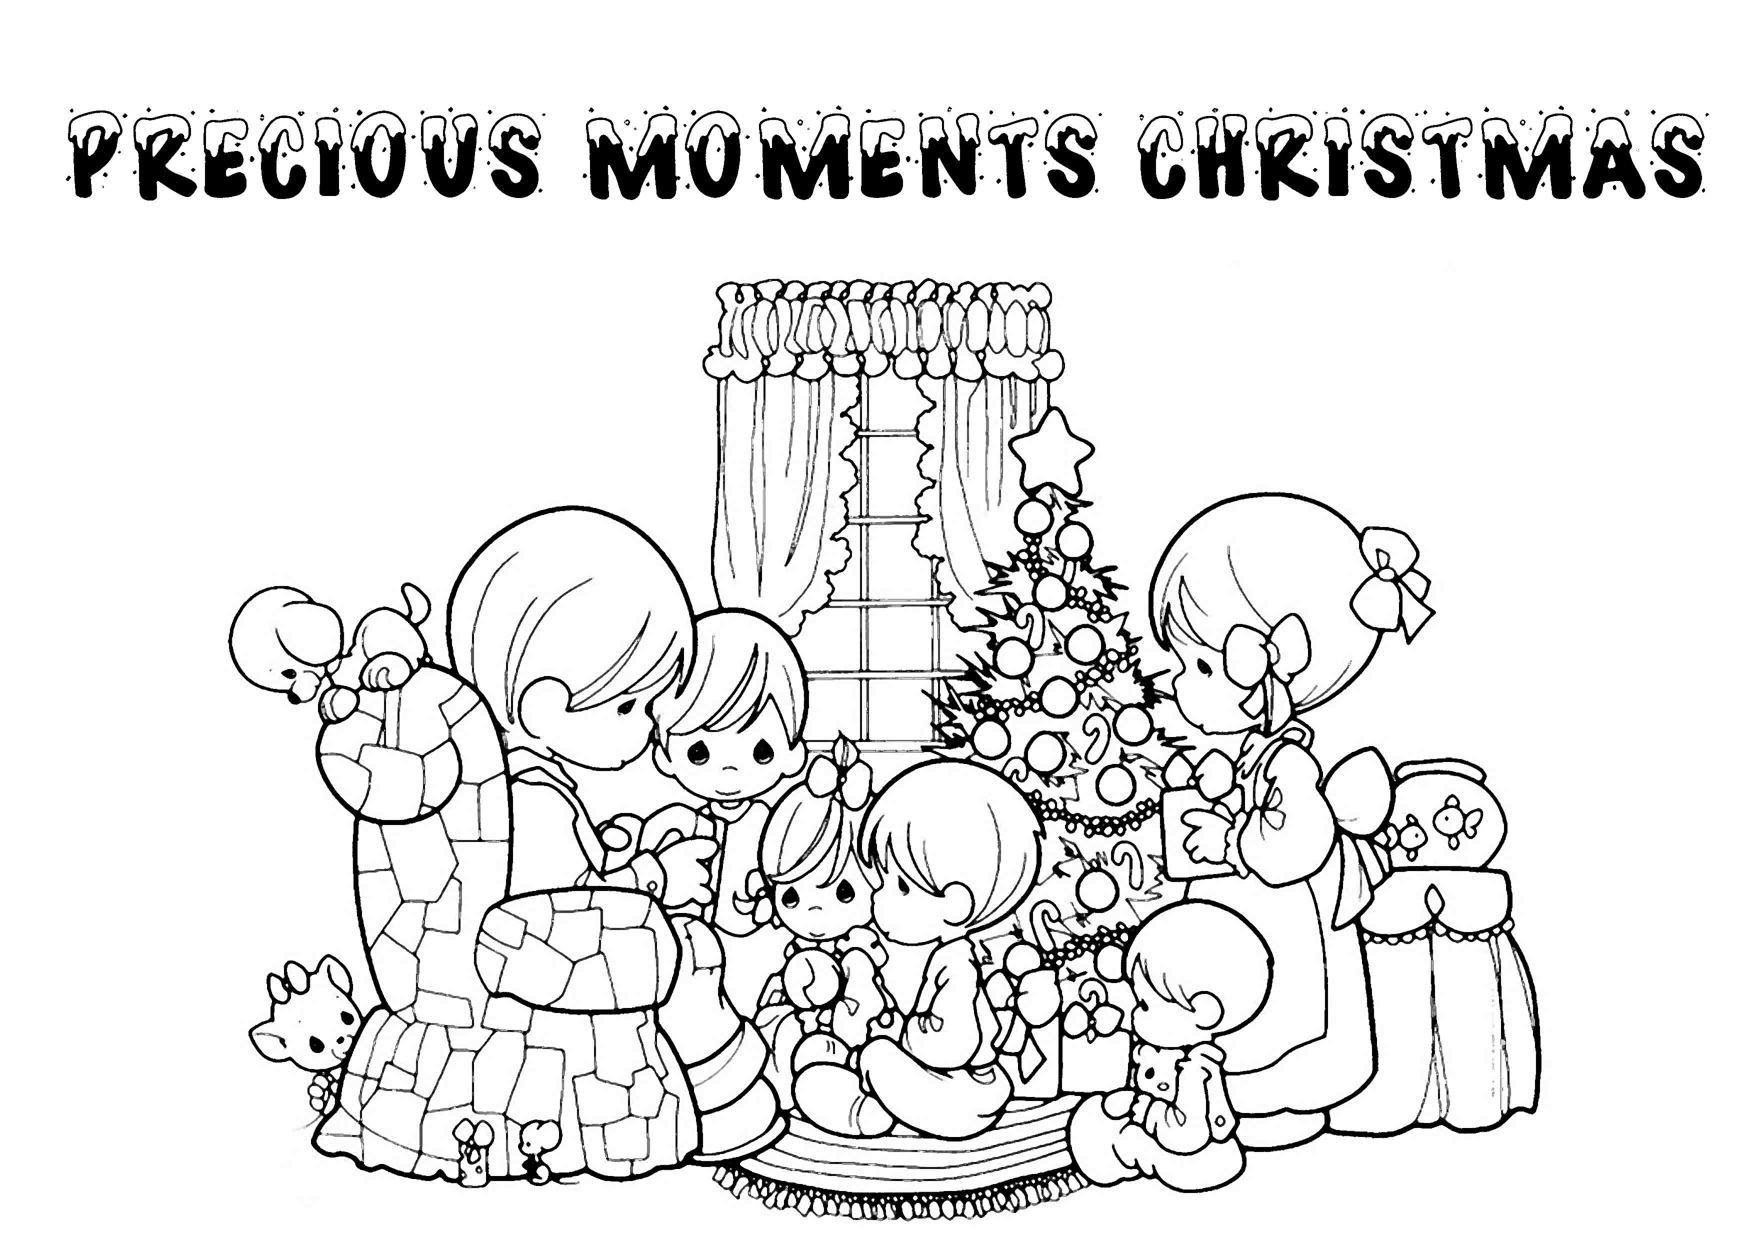 Religious Christmas Coloring Pages For Kids Printable  Christmas Religious Printable Coloring Pages Coloring Home